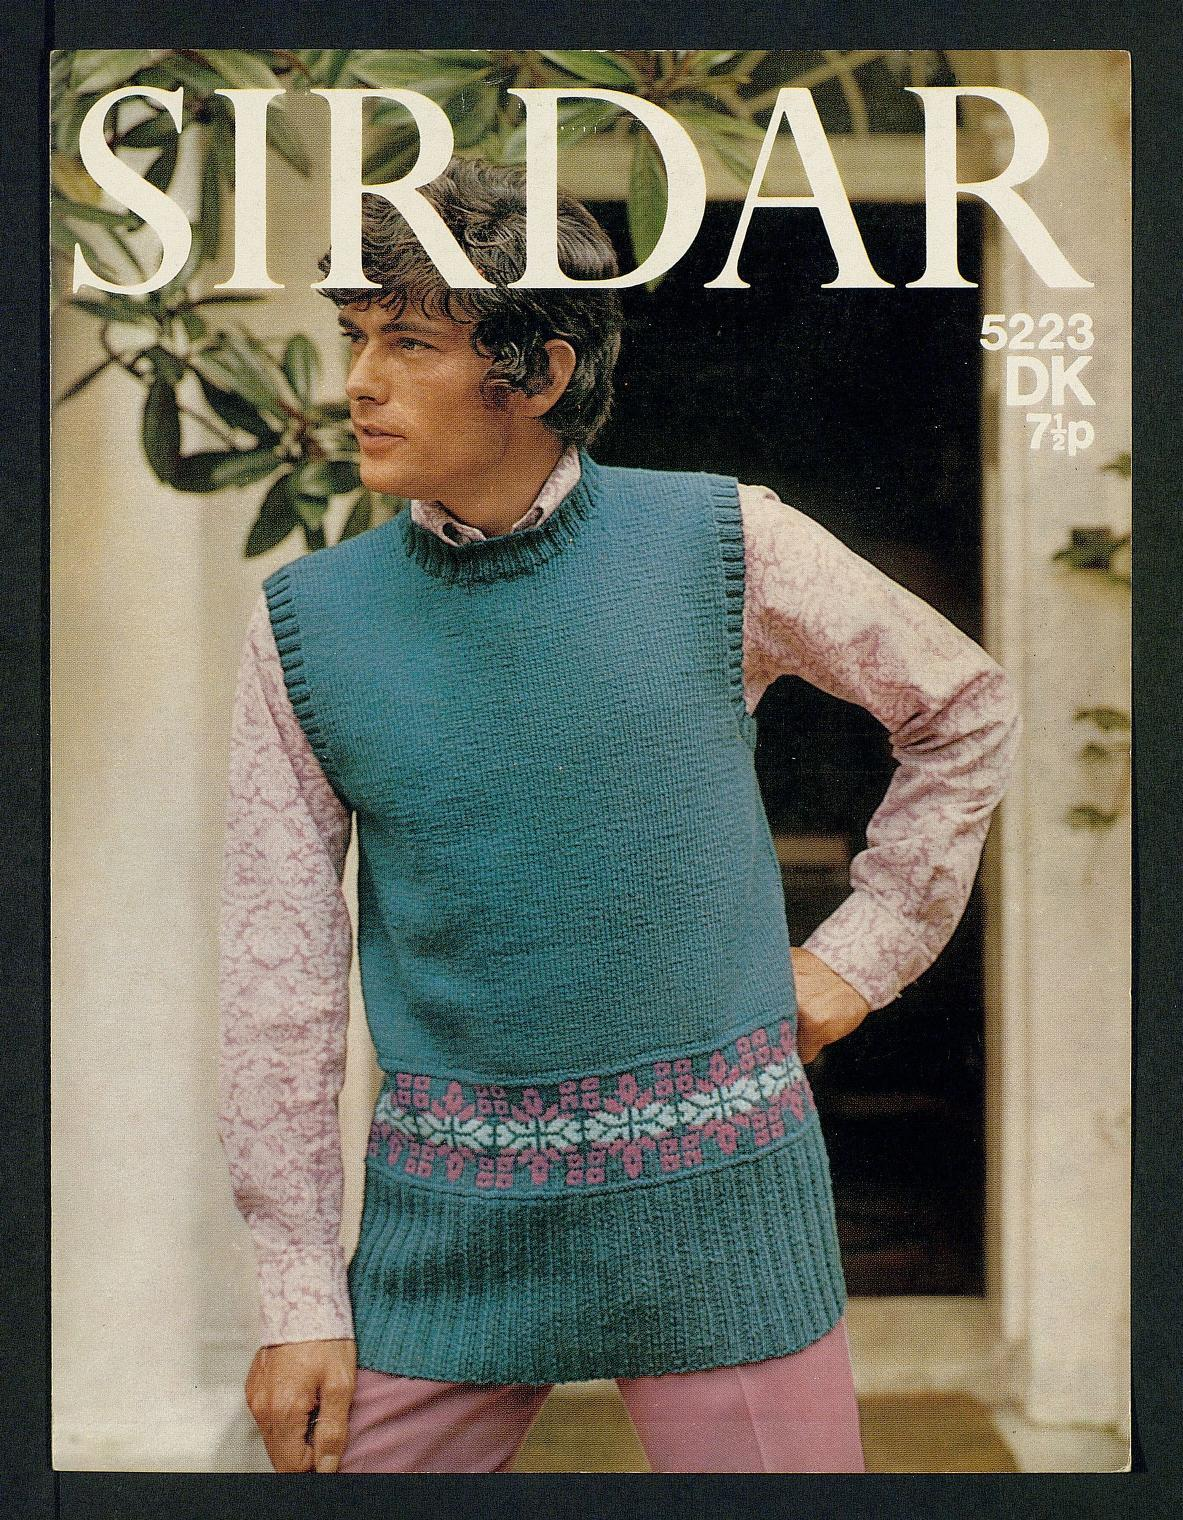 Encantador Sirdar Double Knitting Patterns Embellecimiento - Manta ...